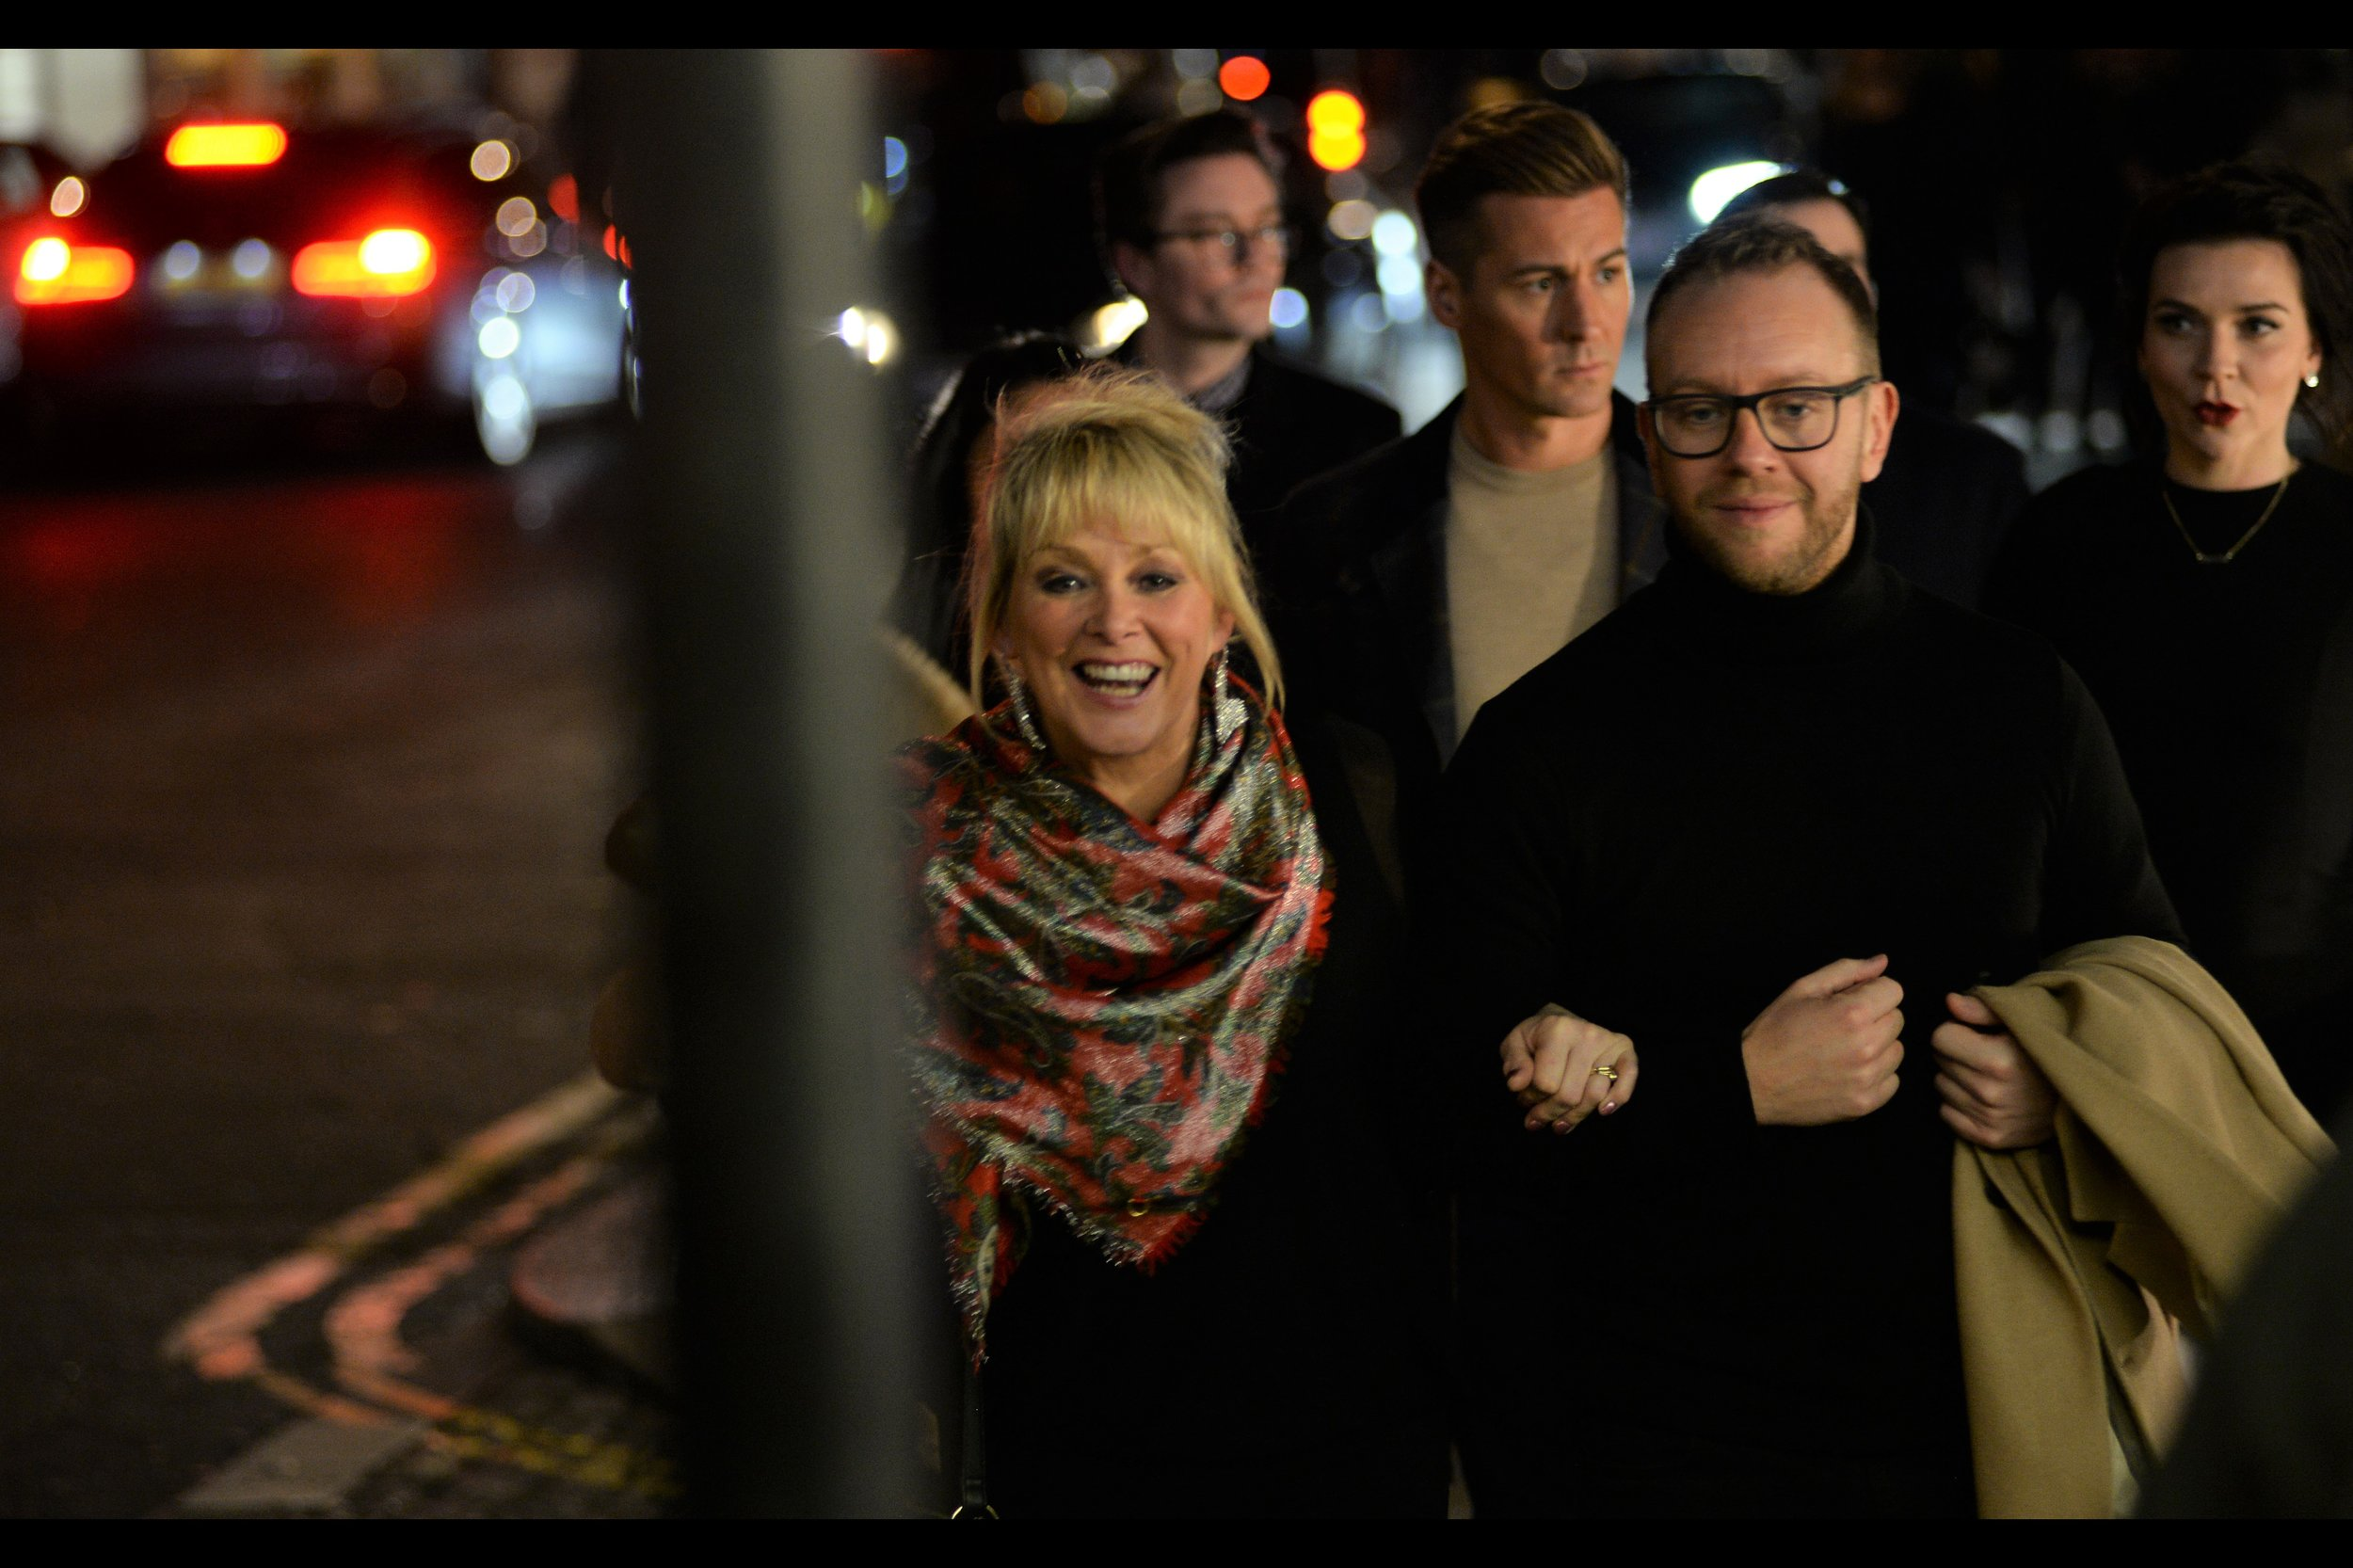 Cheryl Baker is from the band 'Bucks Fizz', who won Eurovision in 1981. The scarf is fantastic too (it's London Fashion week as of today, so I feel obliged to point this out)